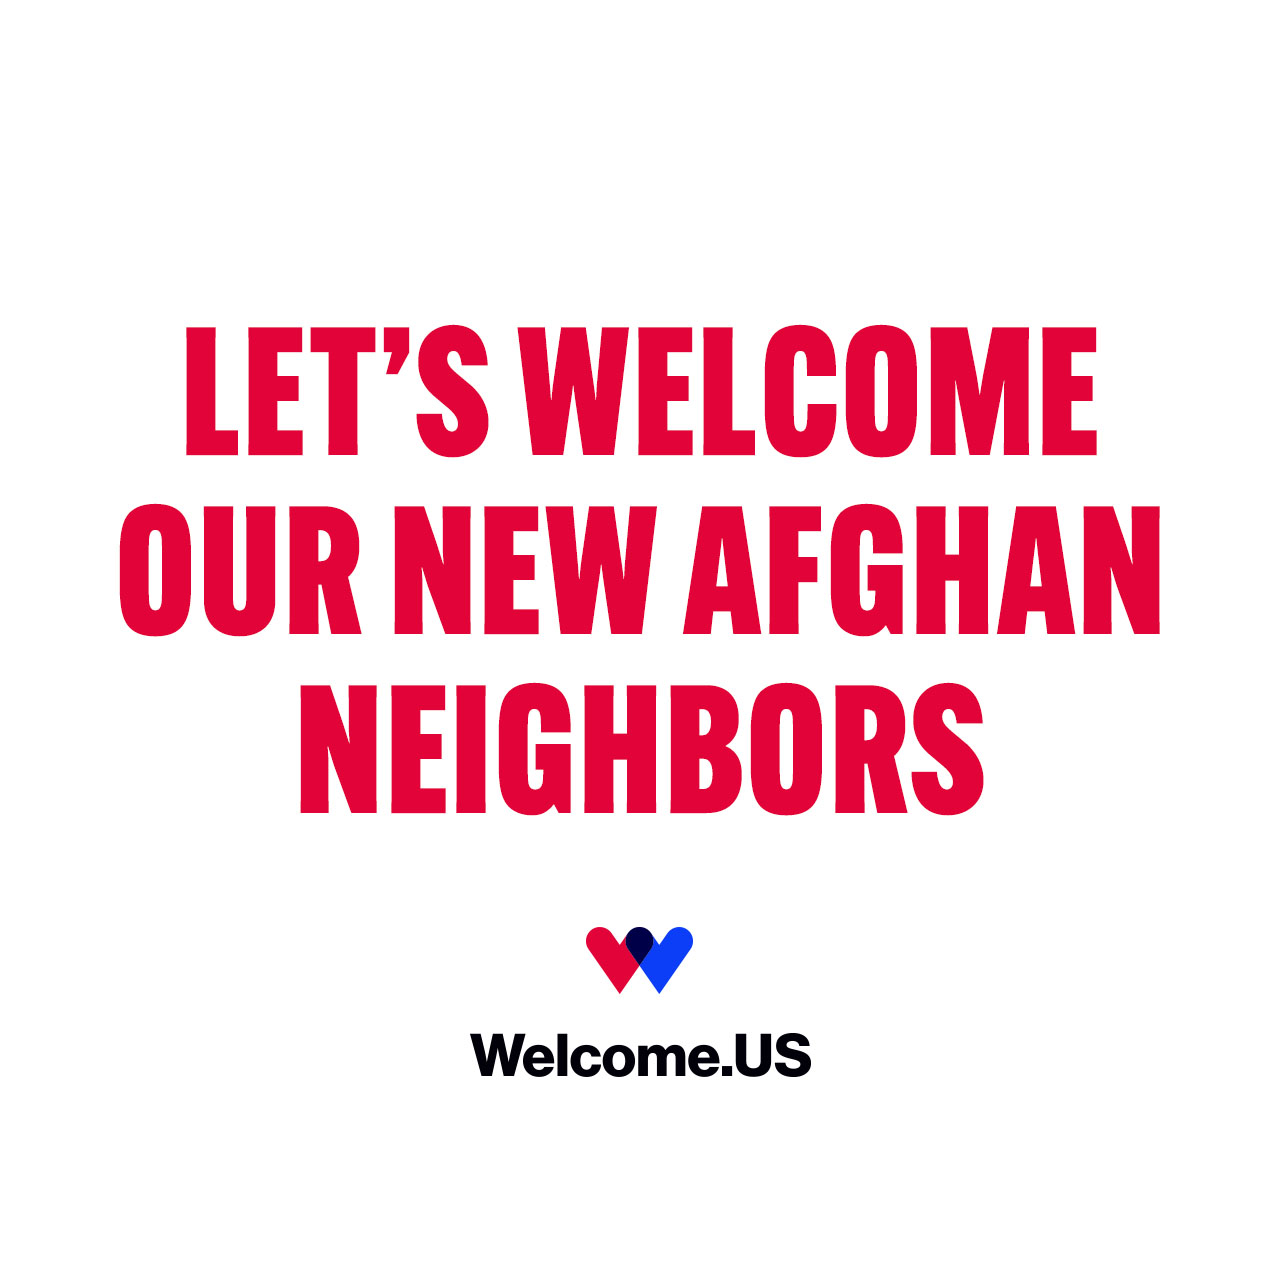 U.S. Committee for Refugees and Immigrants Joins Welcome.US to Mobilize Support for Afghan Refugees in the United States